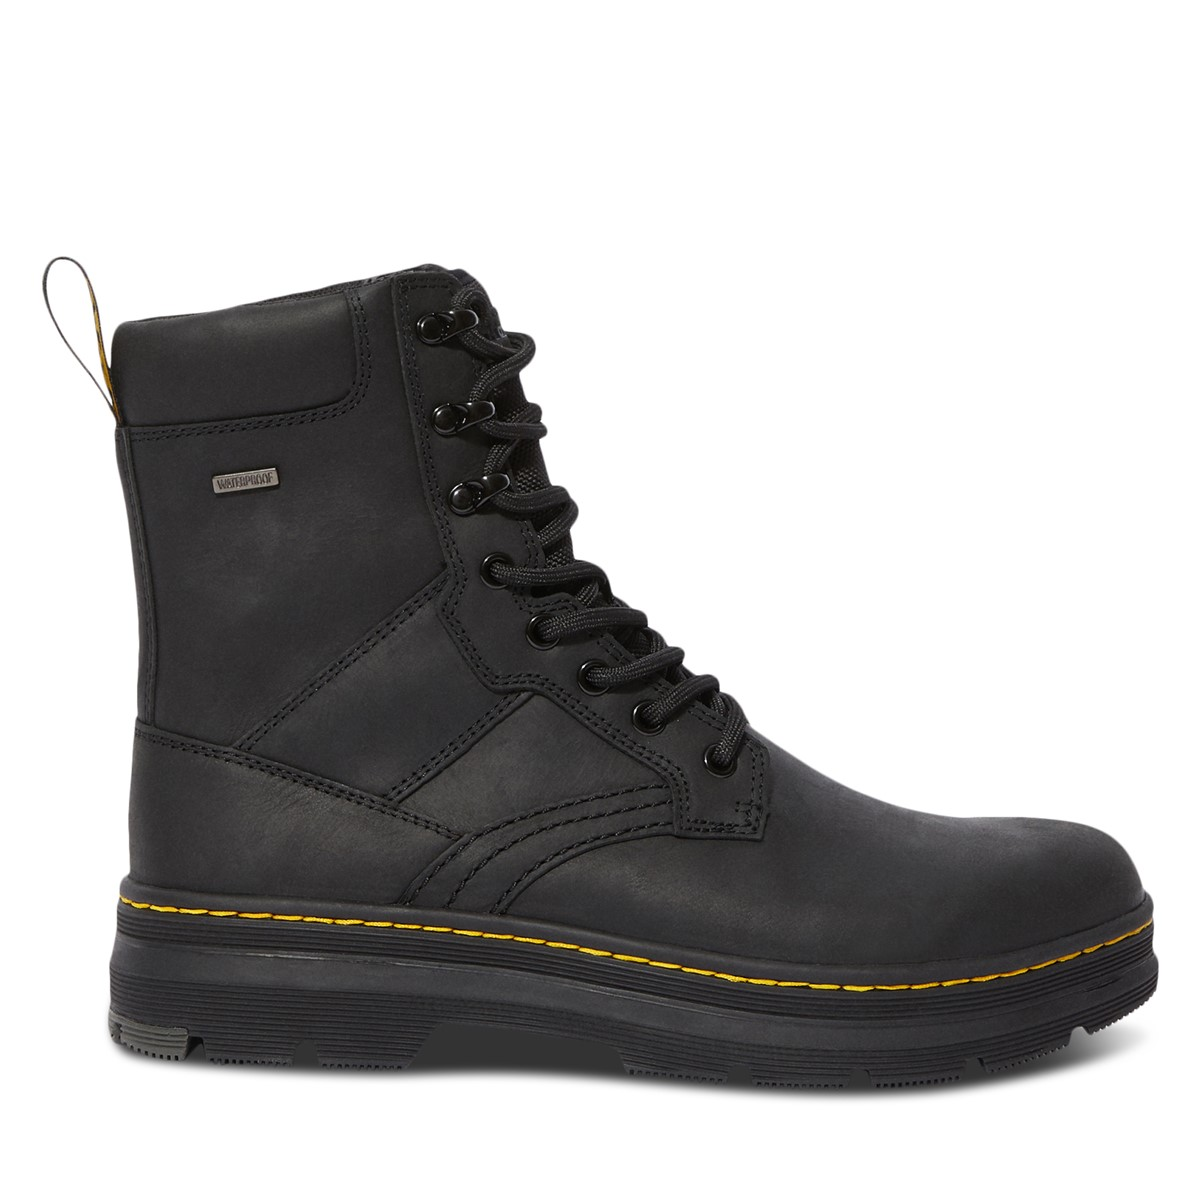 Men's Iowa Boots in Black